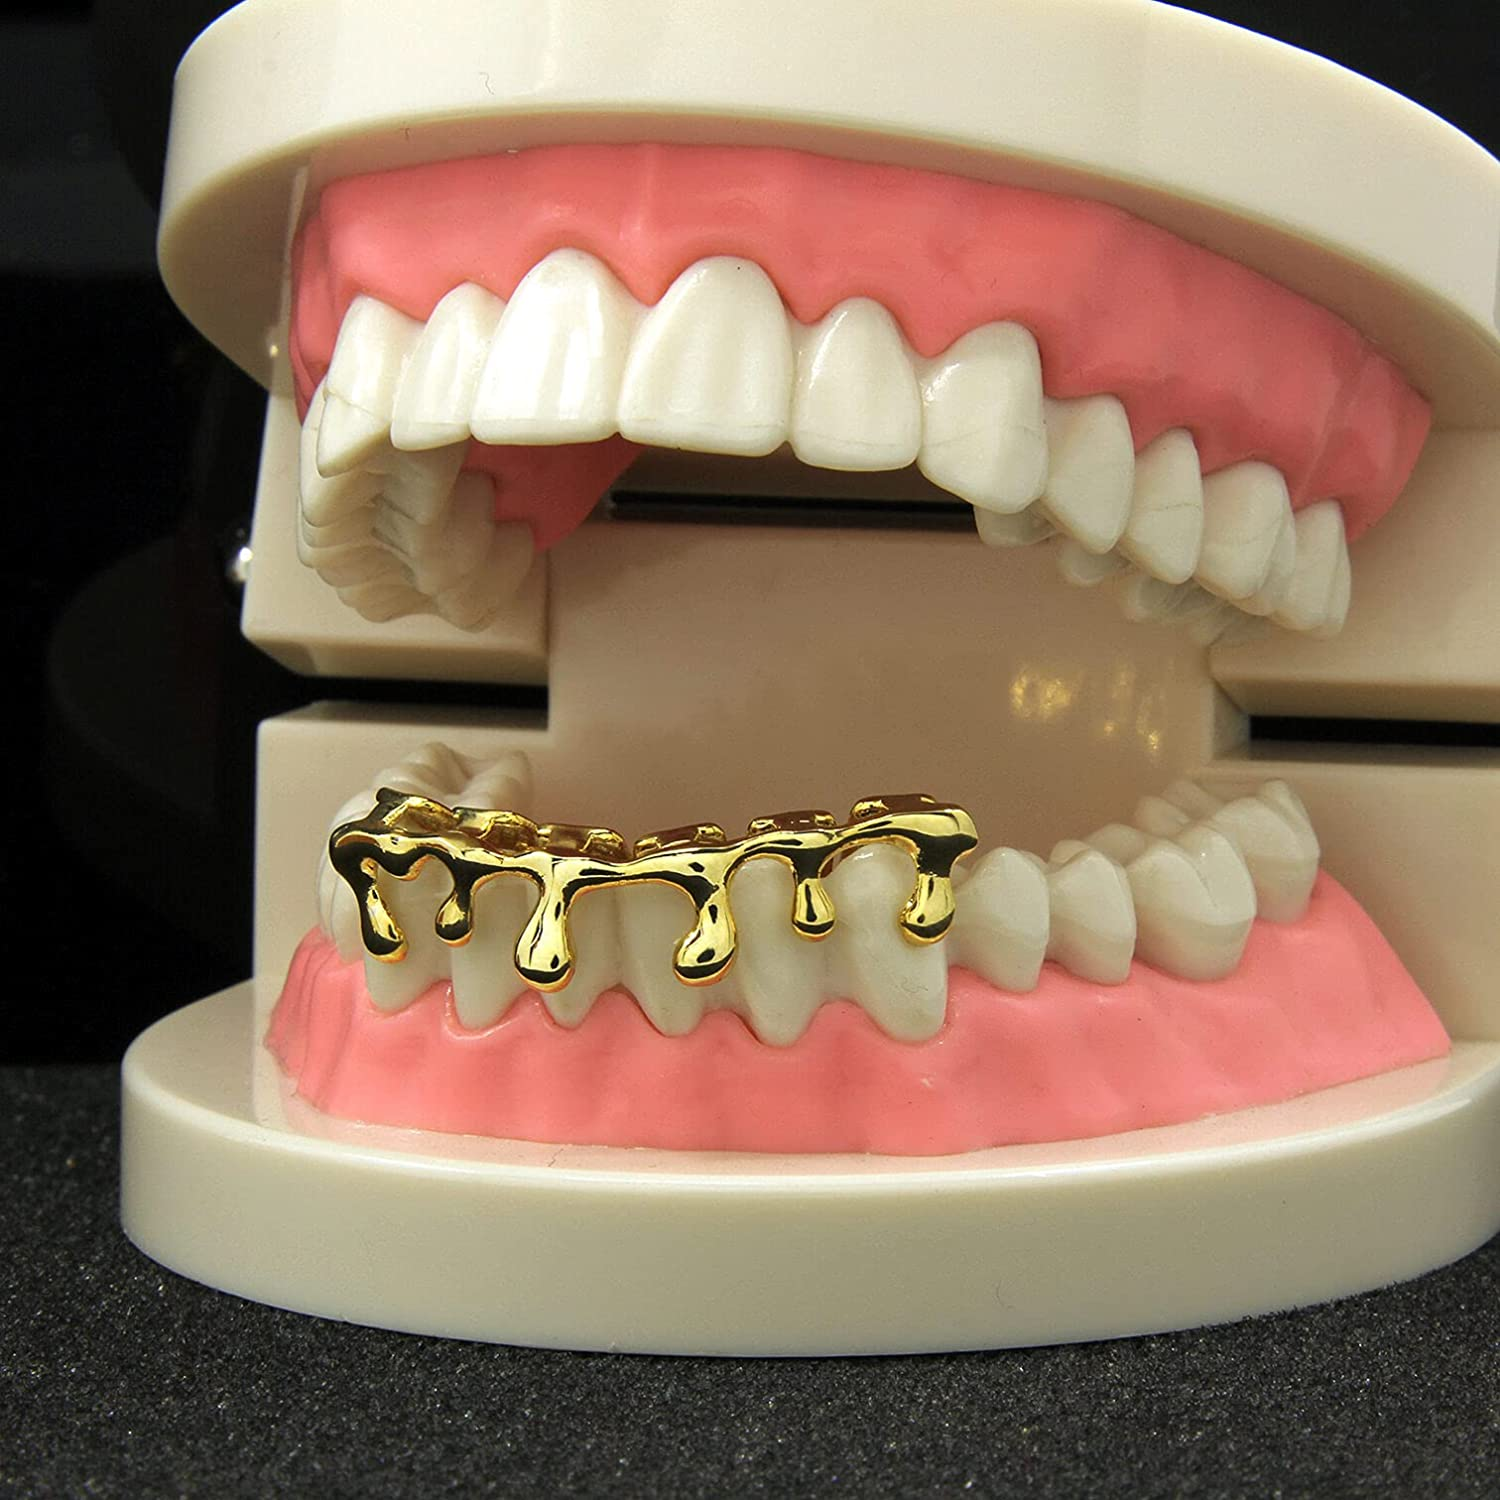 BESTWSTORE Custom Fit 14k Gold Plated Hip Hop Teeth Drip Grillz Caps Lower Bottom Grill One Size Fits MOST Adult Teeth